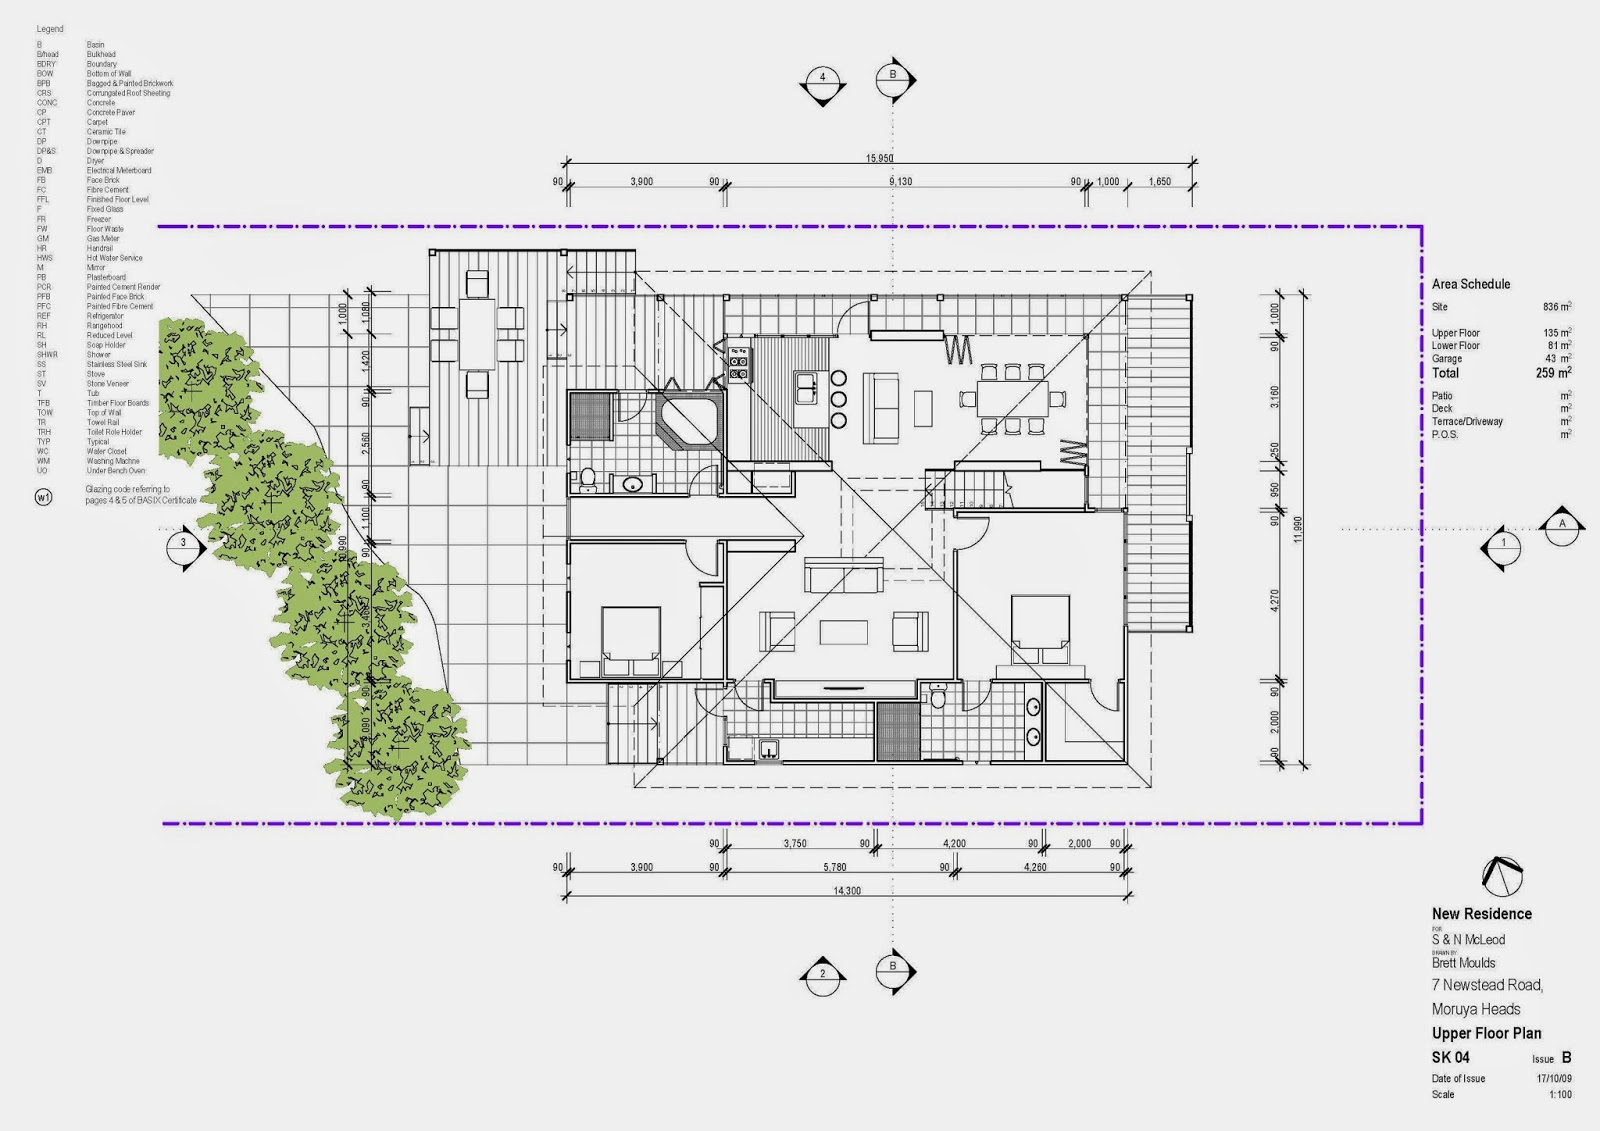 Architectural Floor Plan Architectural Floor Plan